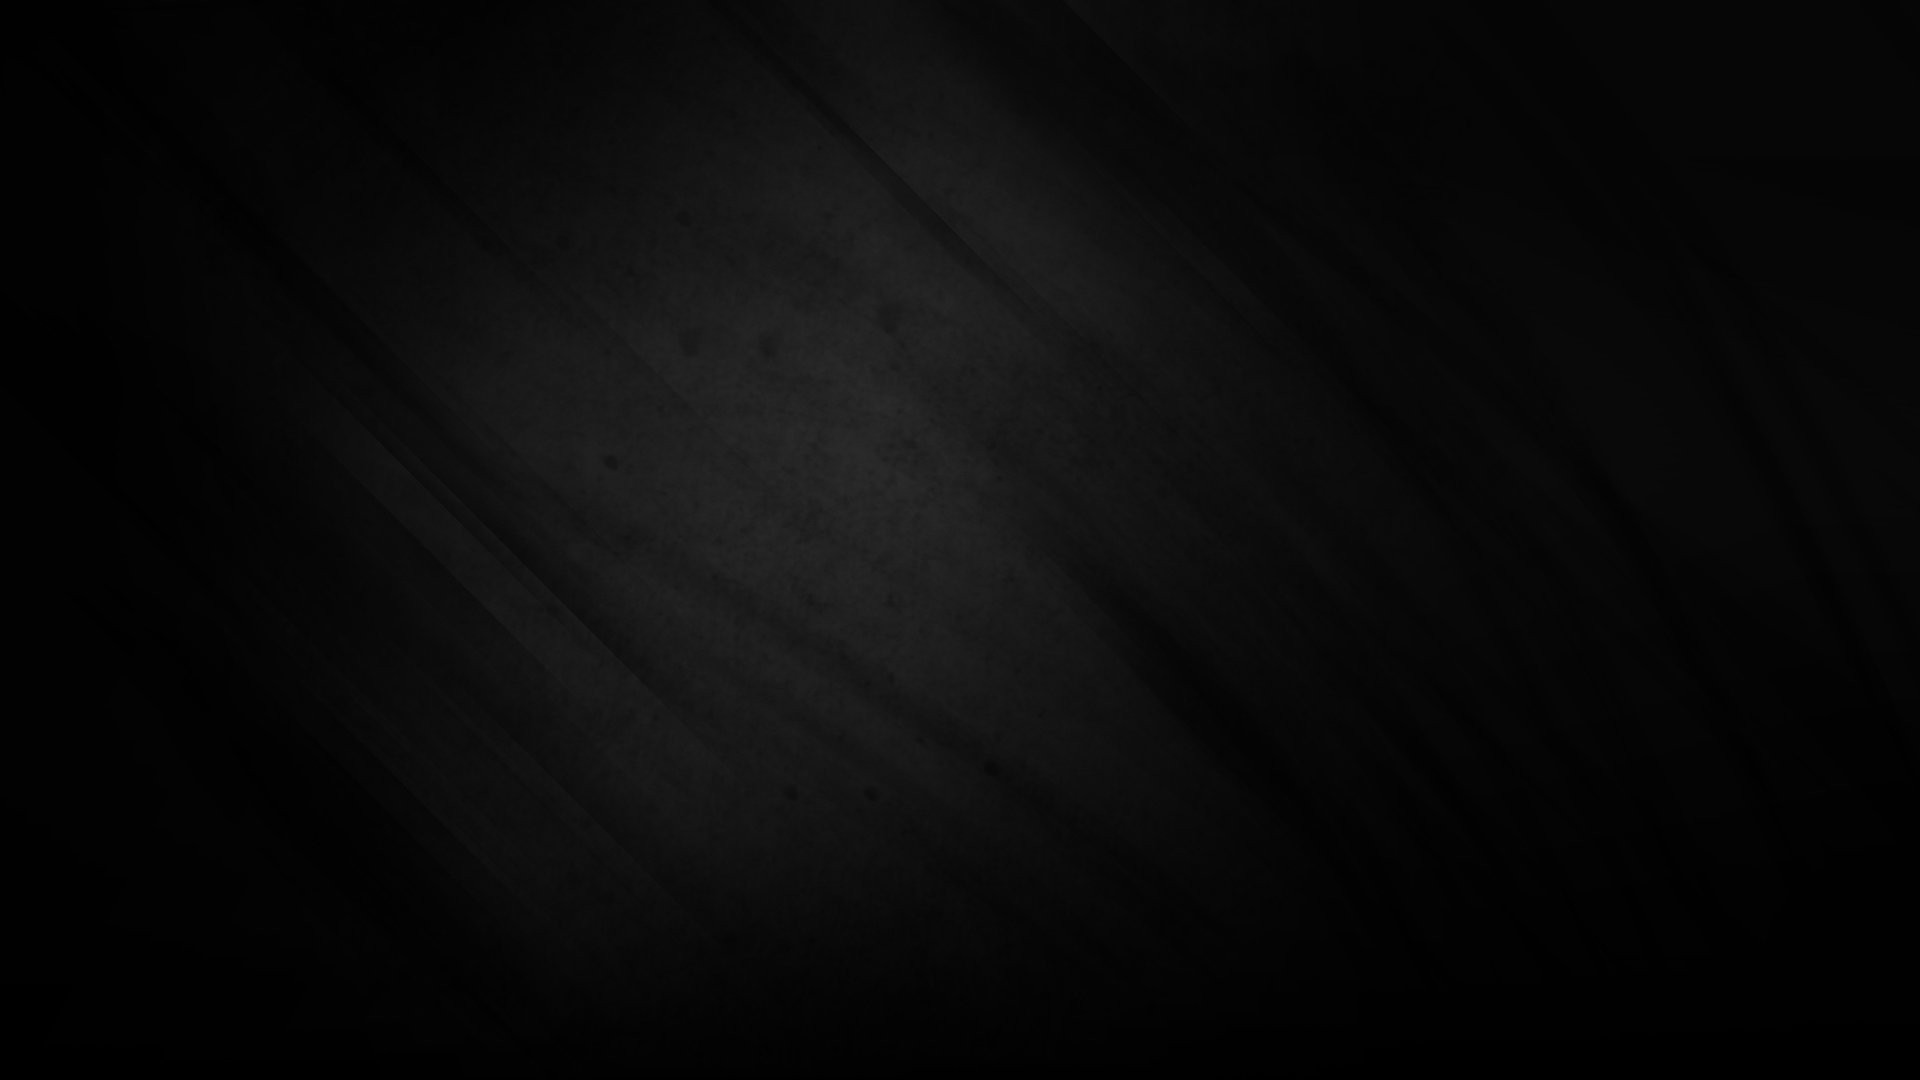 Plain Black background ·① Download free HD wallpapers for ...